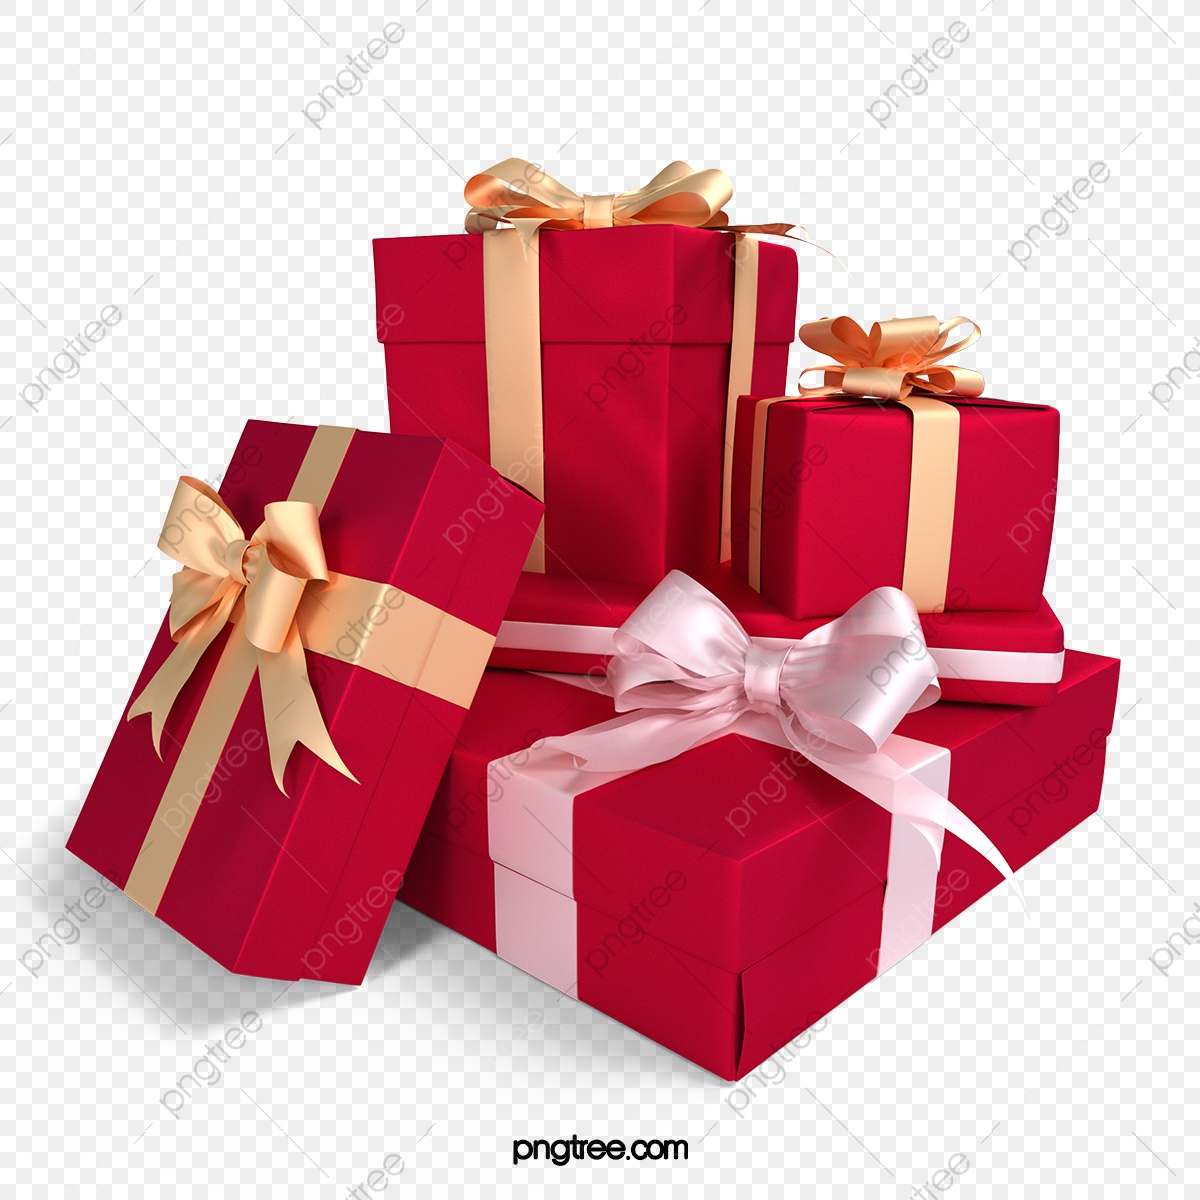 christmas gift png images vector and psd files free download on pngtree https pngtree com freepng red new year gift box three dimensional element 5307401 html